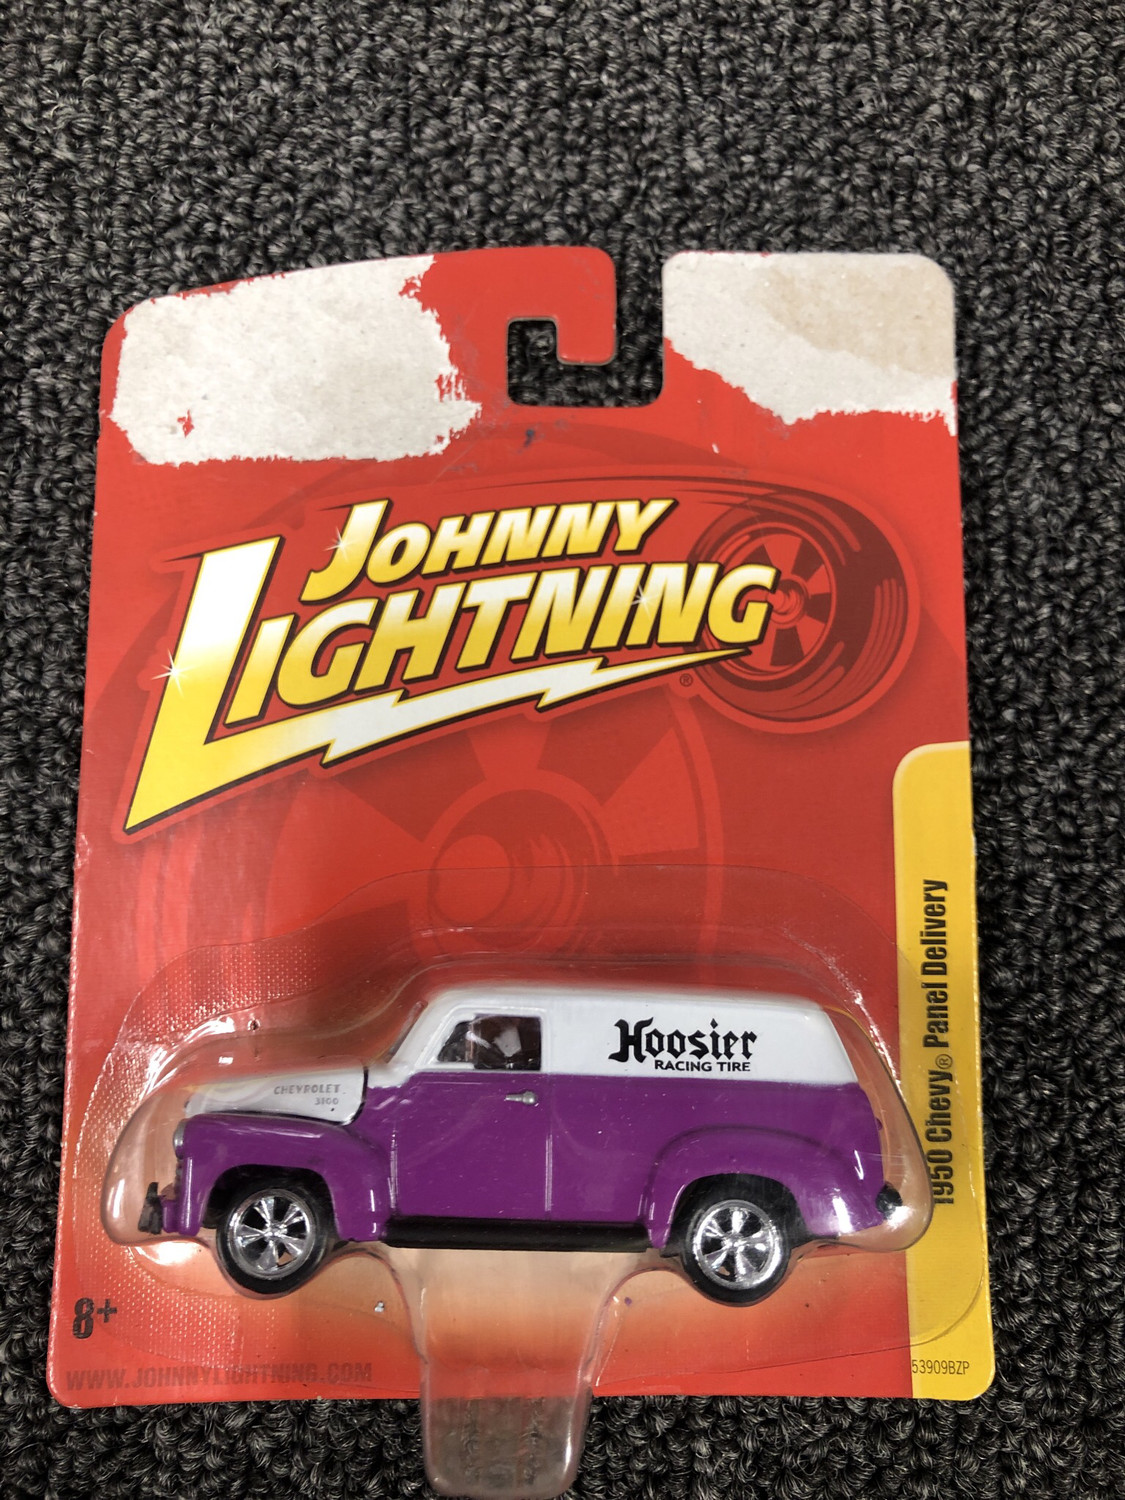 Johnny lightning-1950 Chevy Panel Delivery